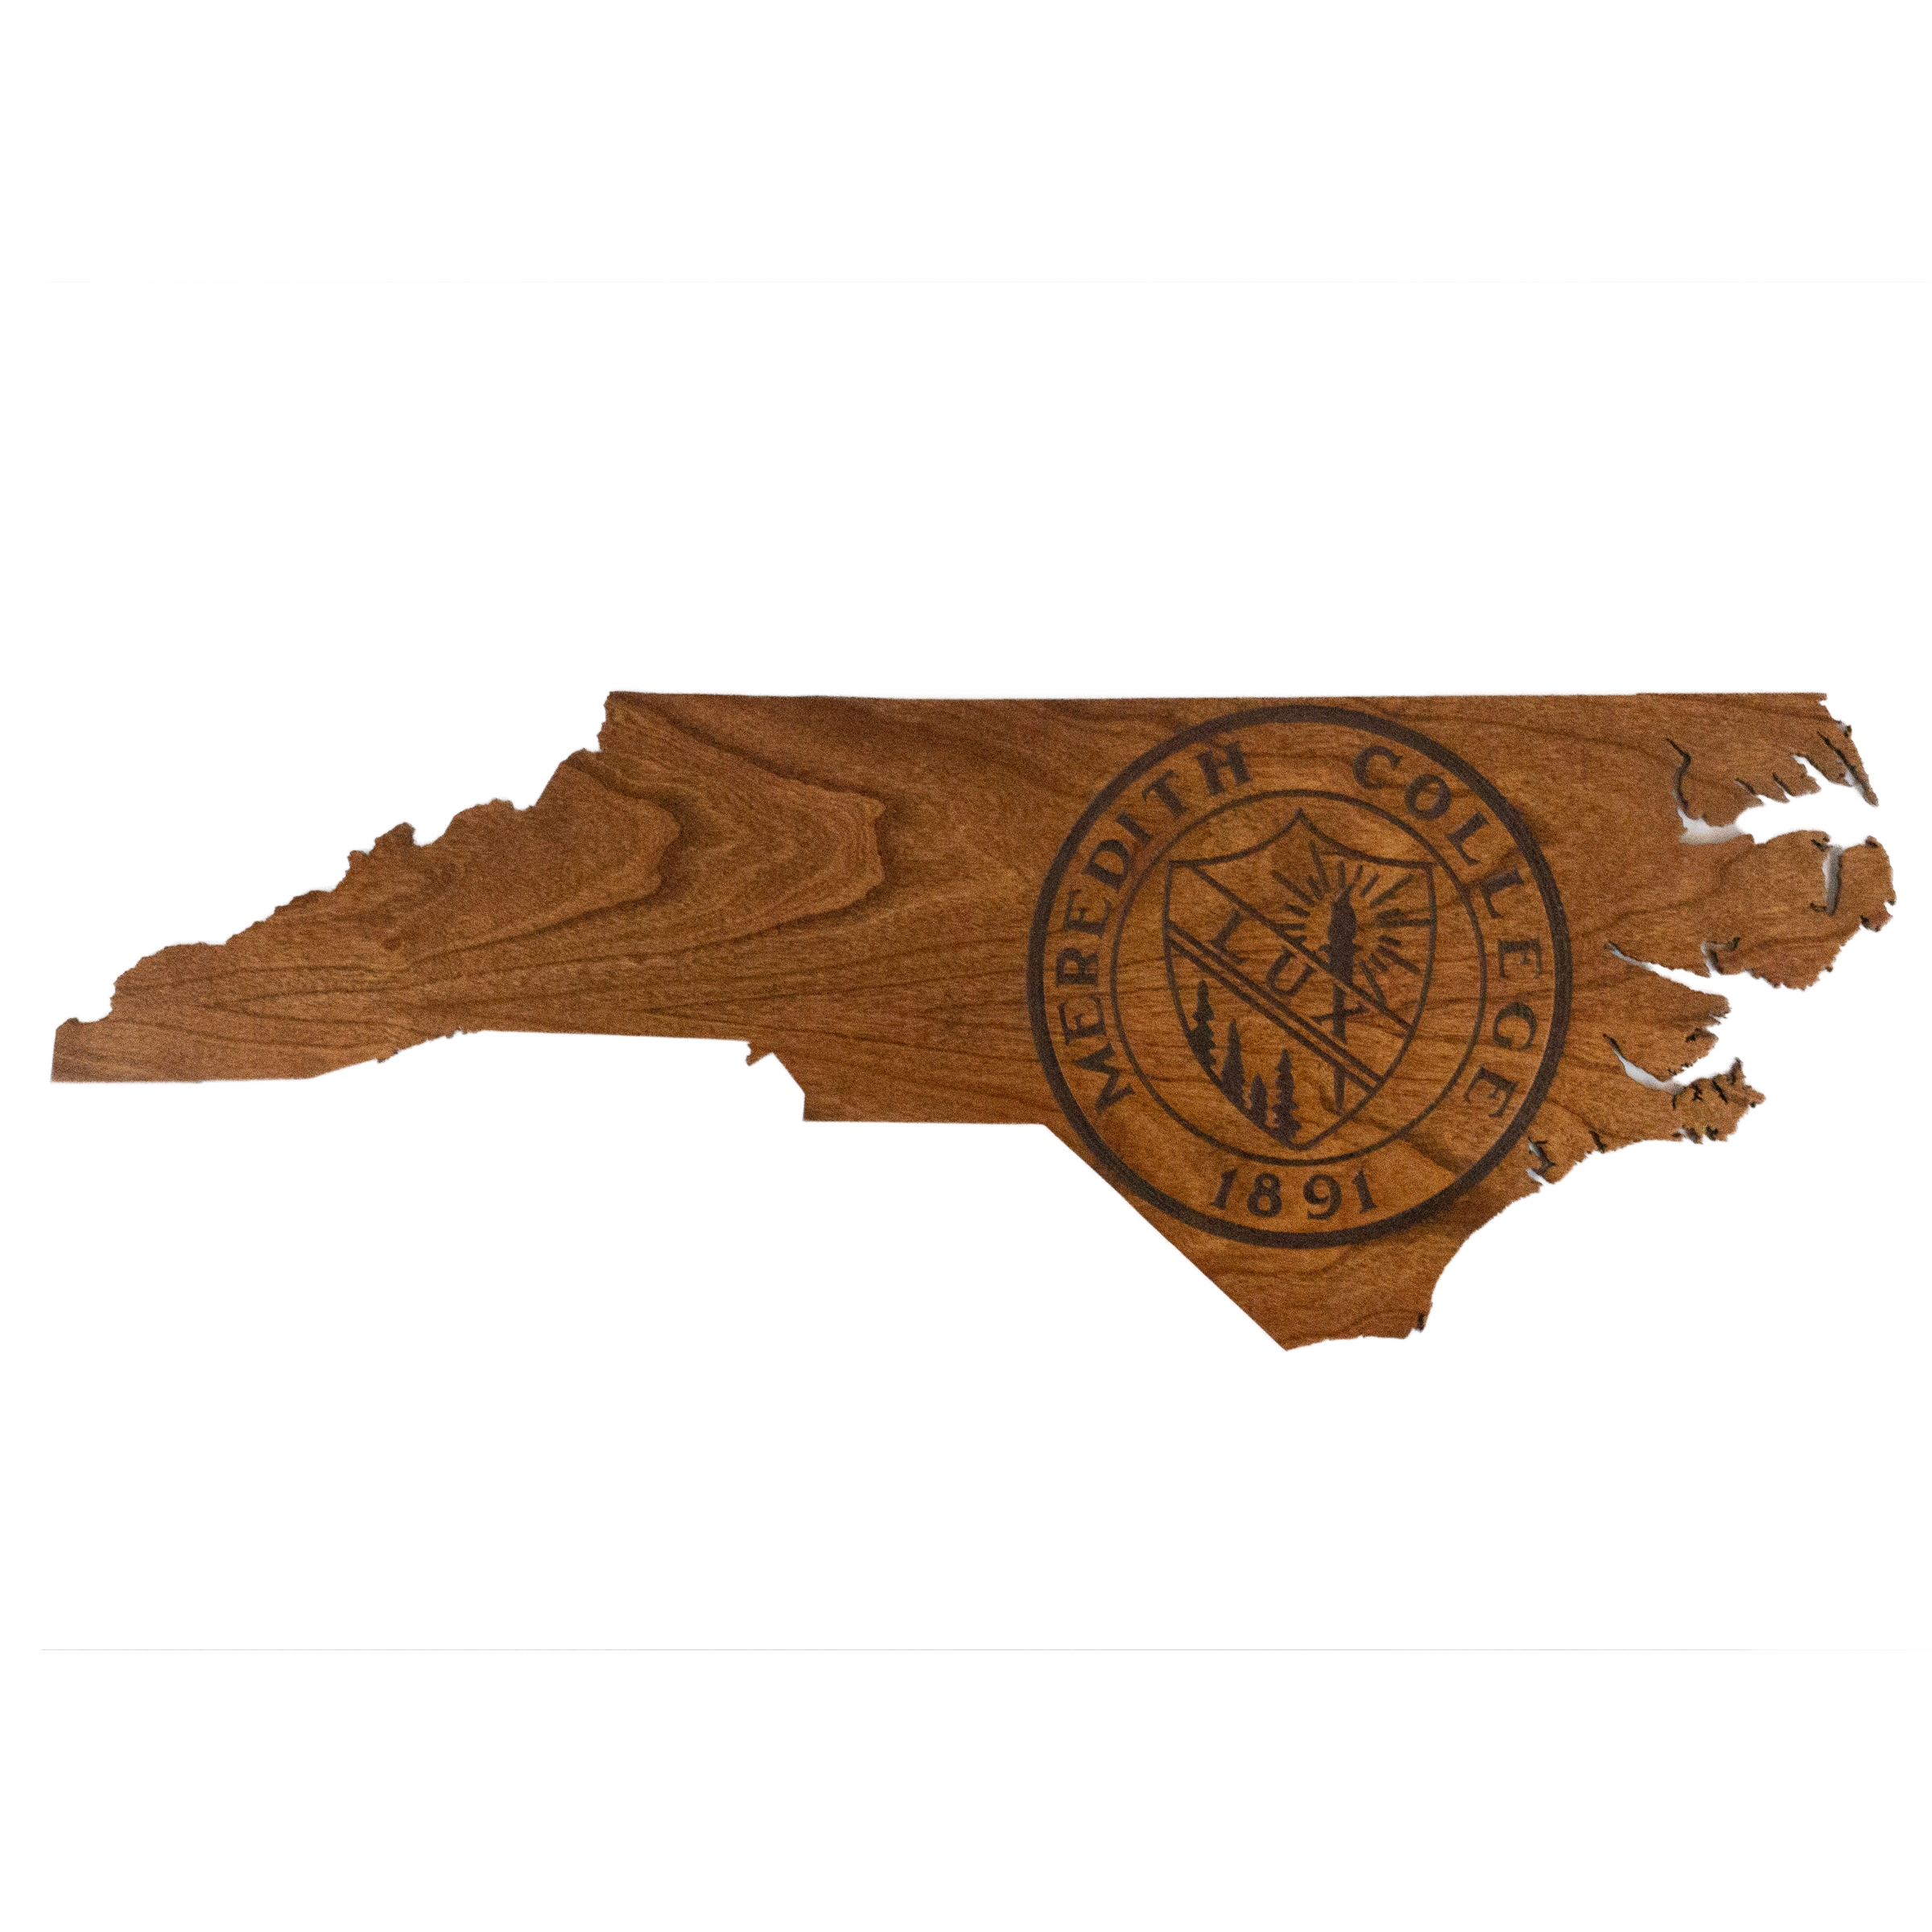 Image for the State Map Wood Sign with Seal LazerEdge product